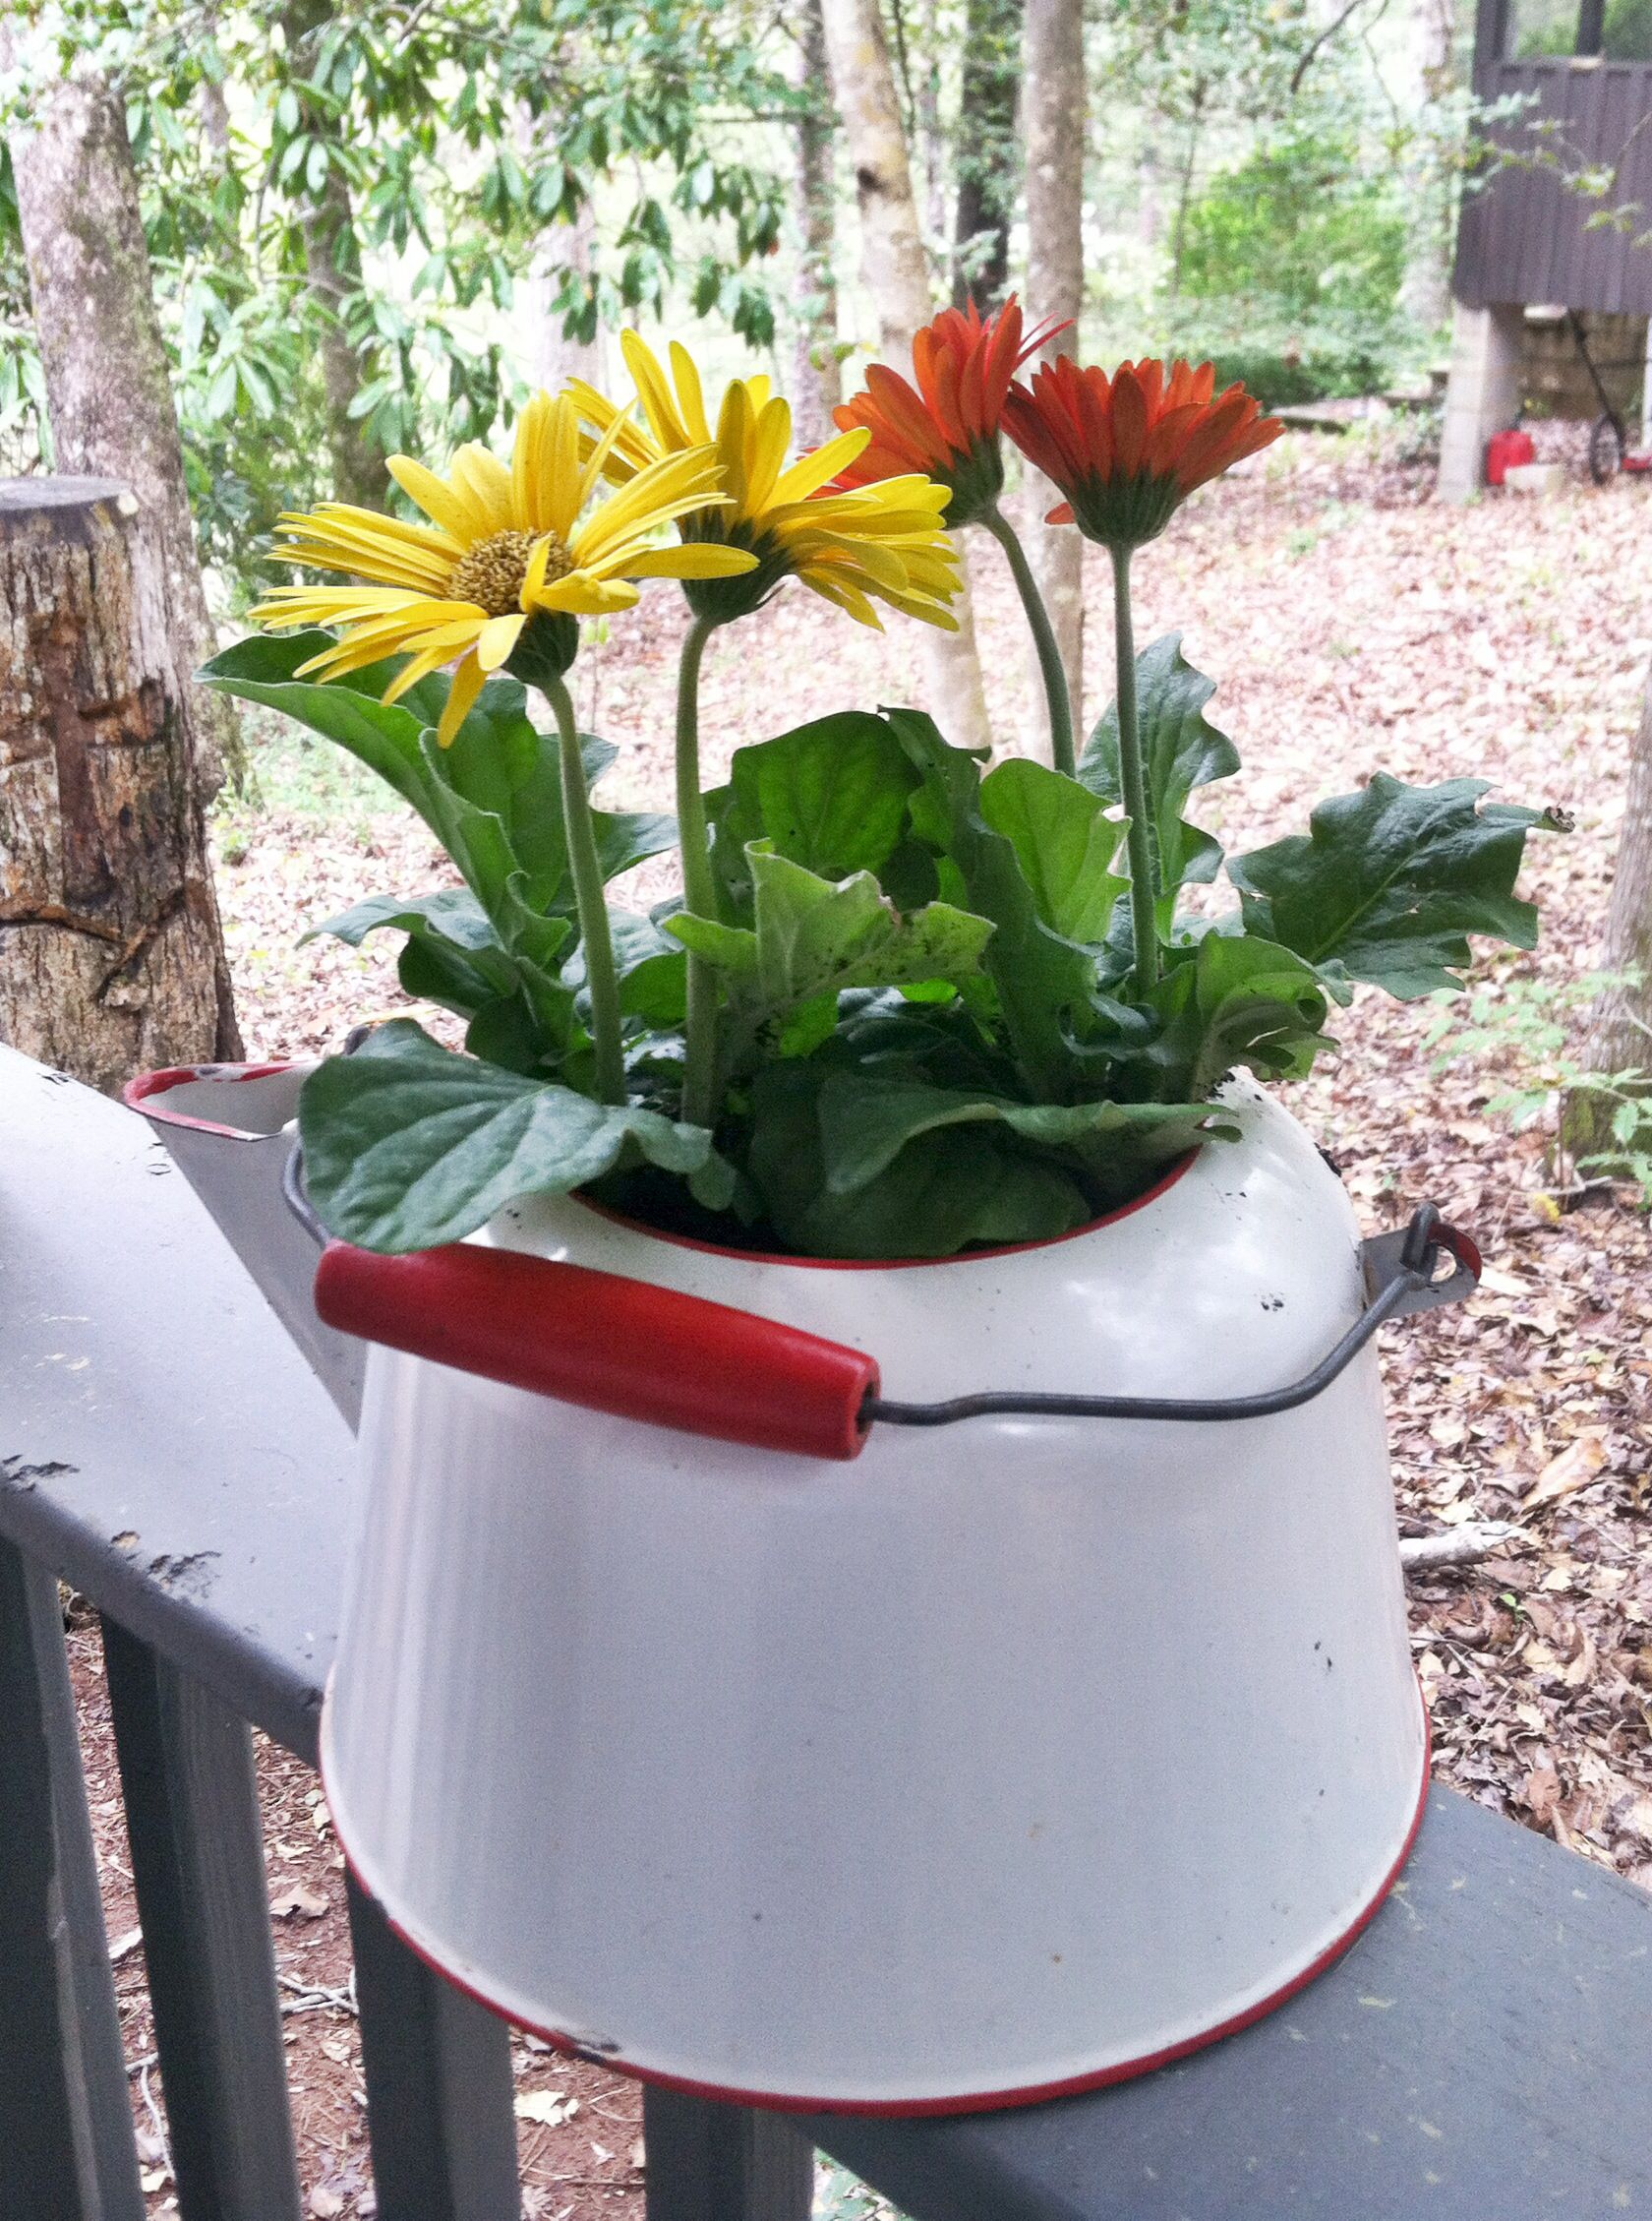 Antique Kettle As Flower Pot Drill Holes In Bottom For Drainage Gerbera Daisies Are Perfect For This Outdoor Flowers Flower Pots Gerbera Daisy